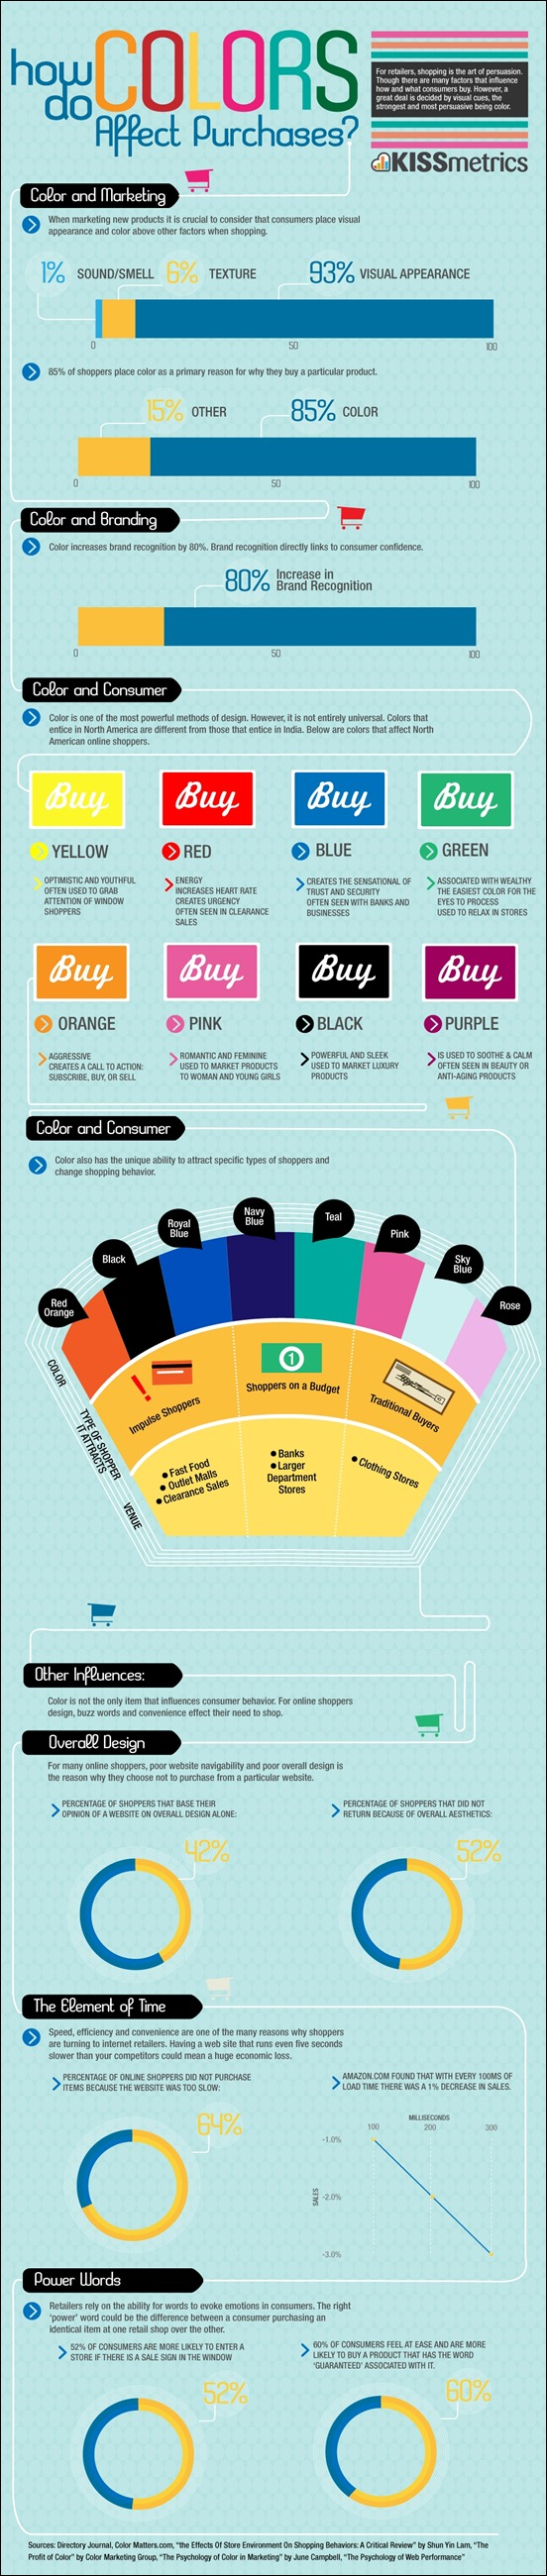 how-colors-affect-purchases